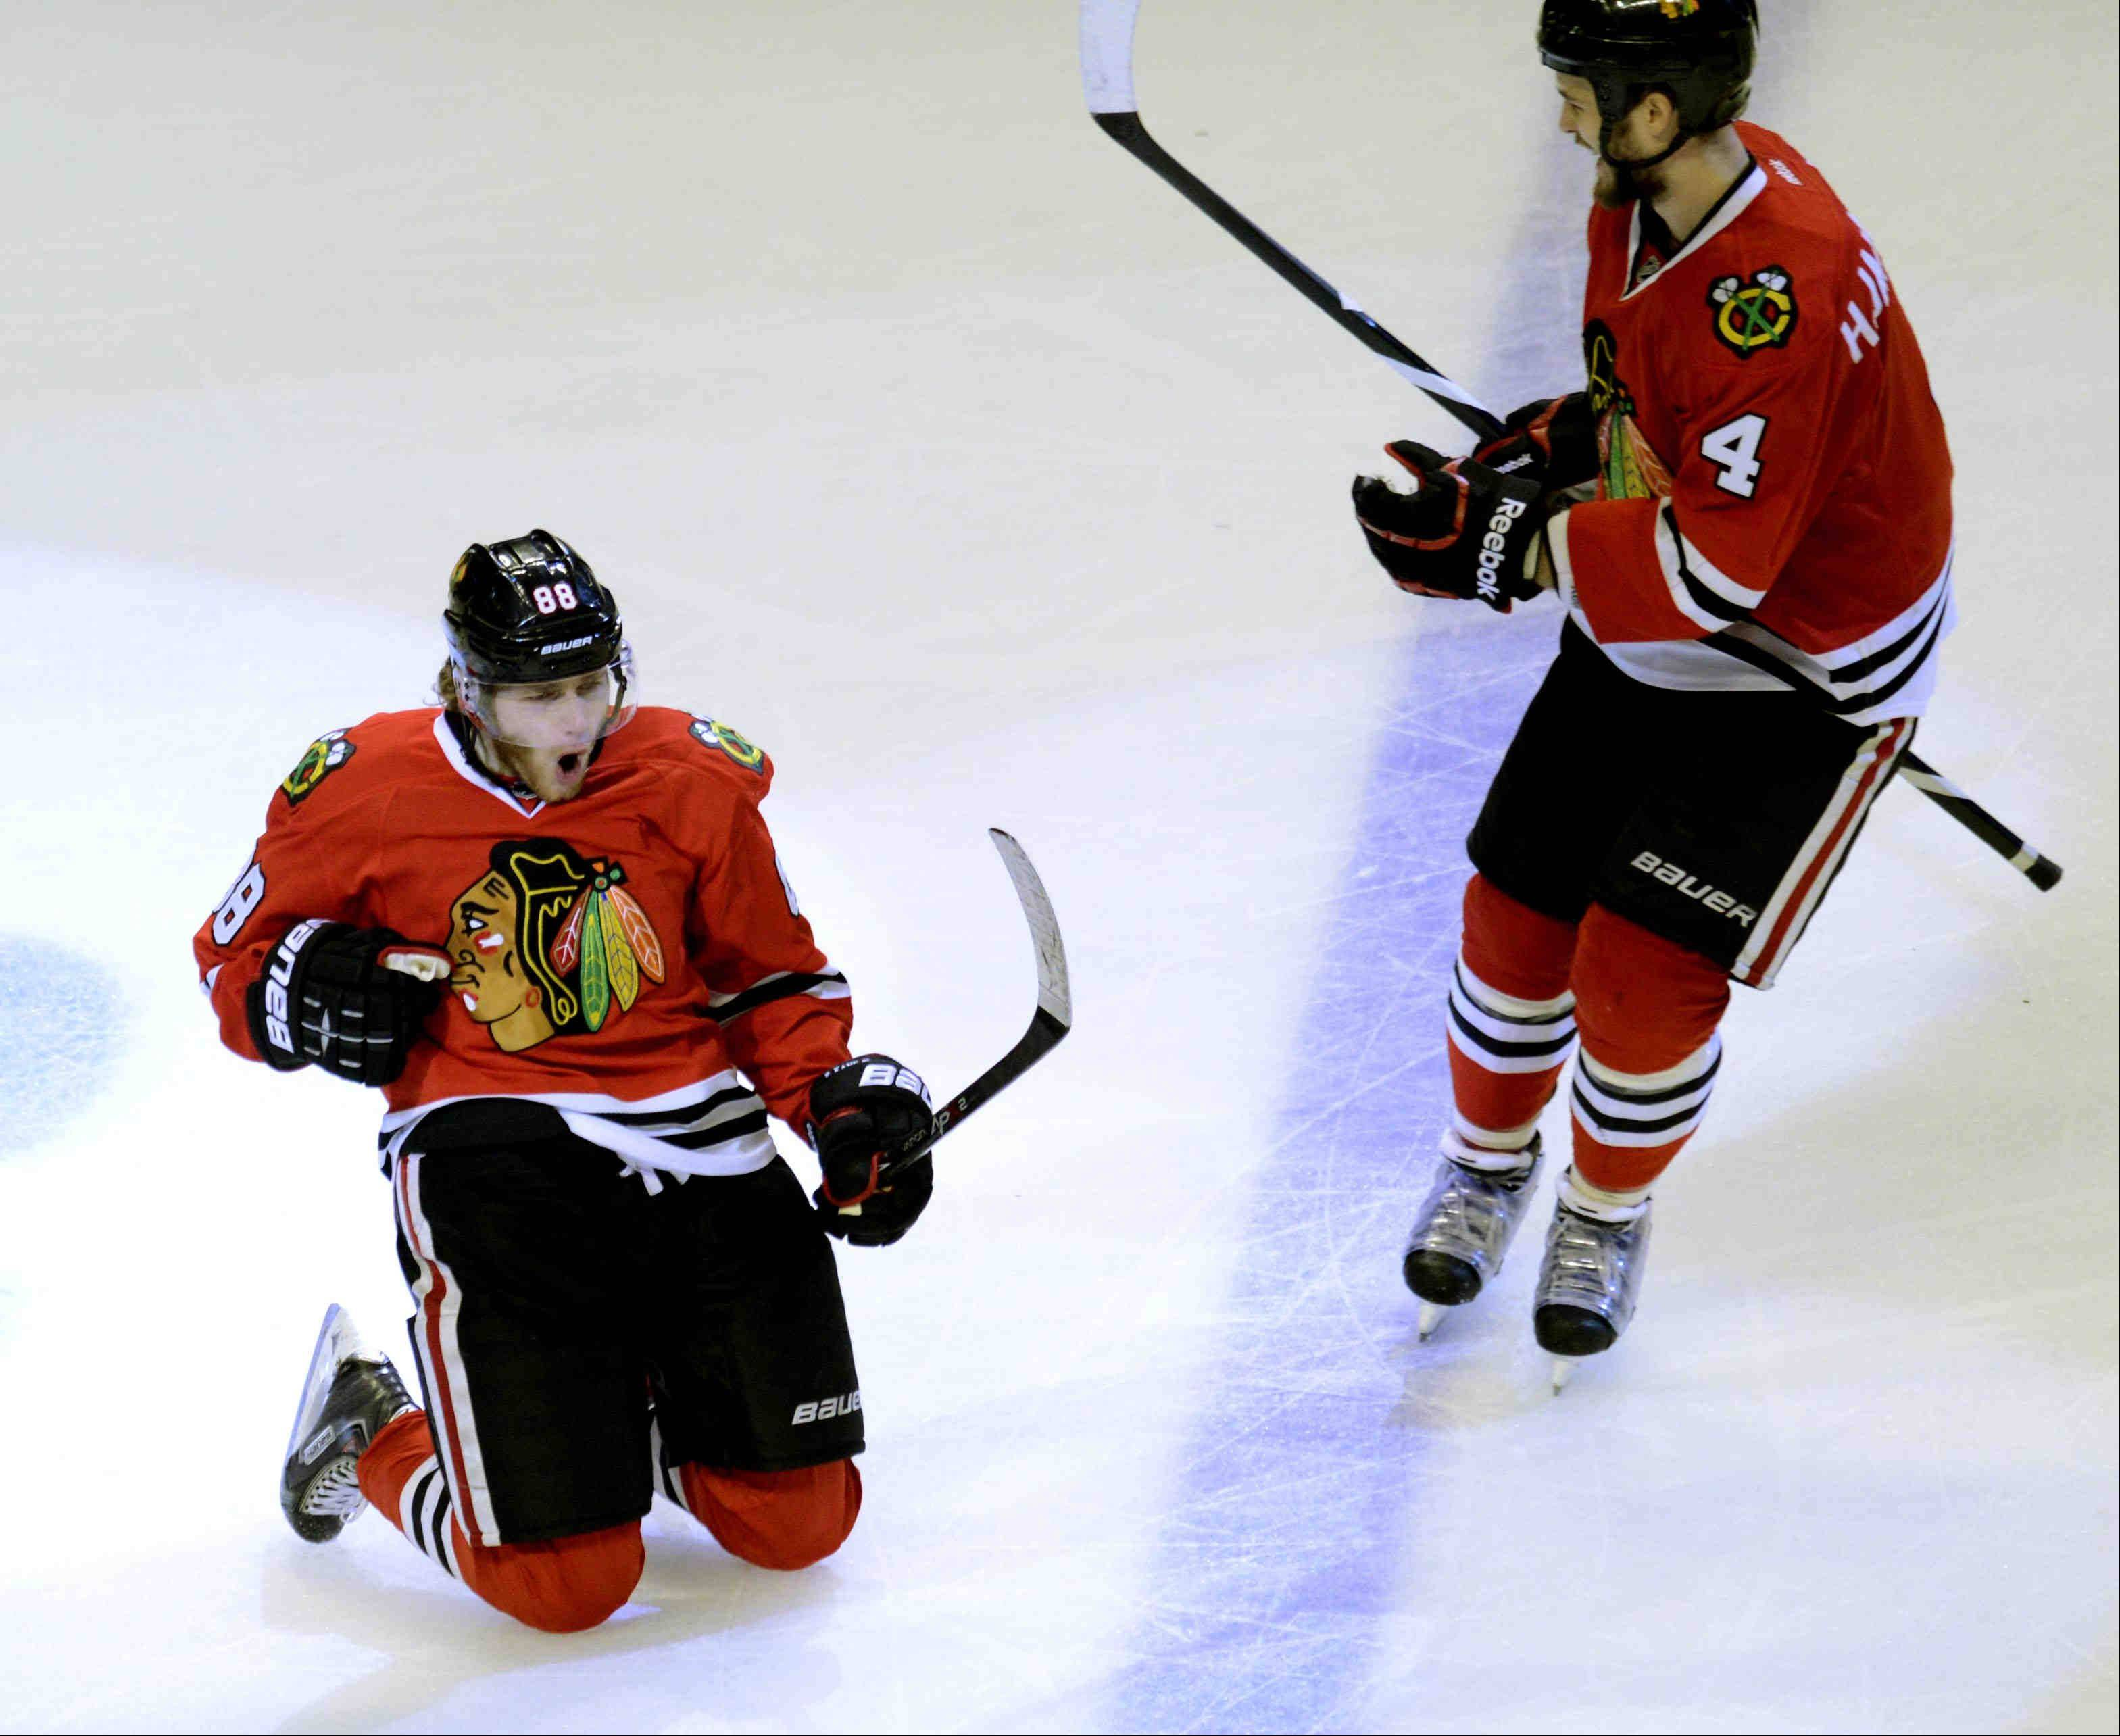 Hat trick for Patrick propels Hawks